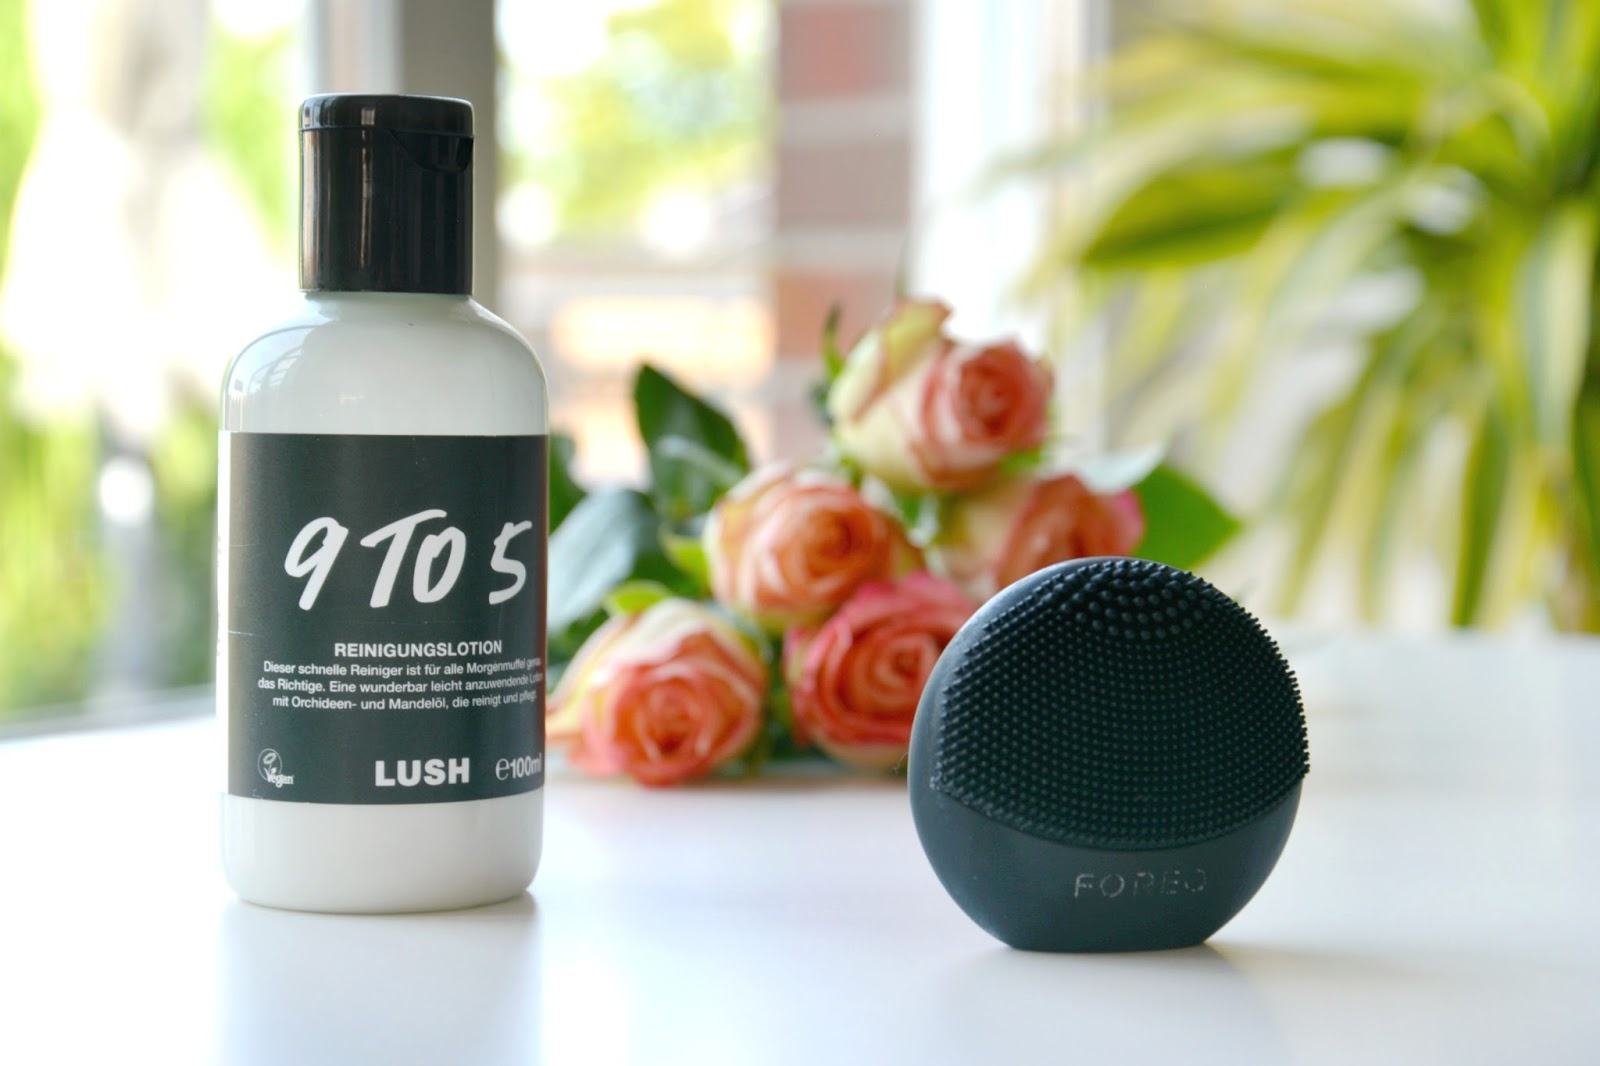 Foreo Luna Play Black; Lush 9 To 5 Cleanser; Fresh Roses